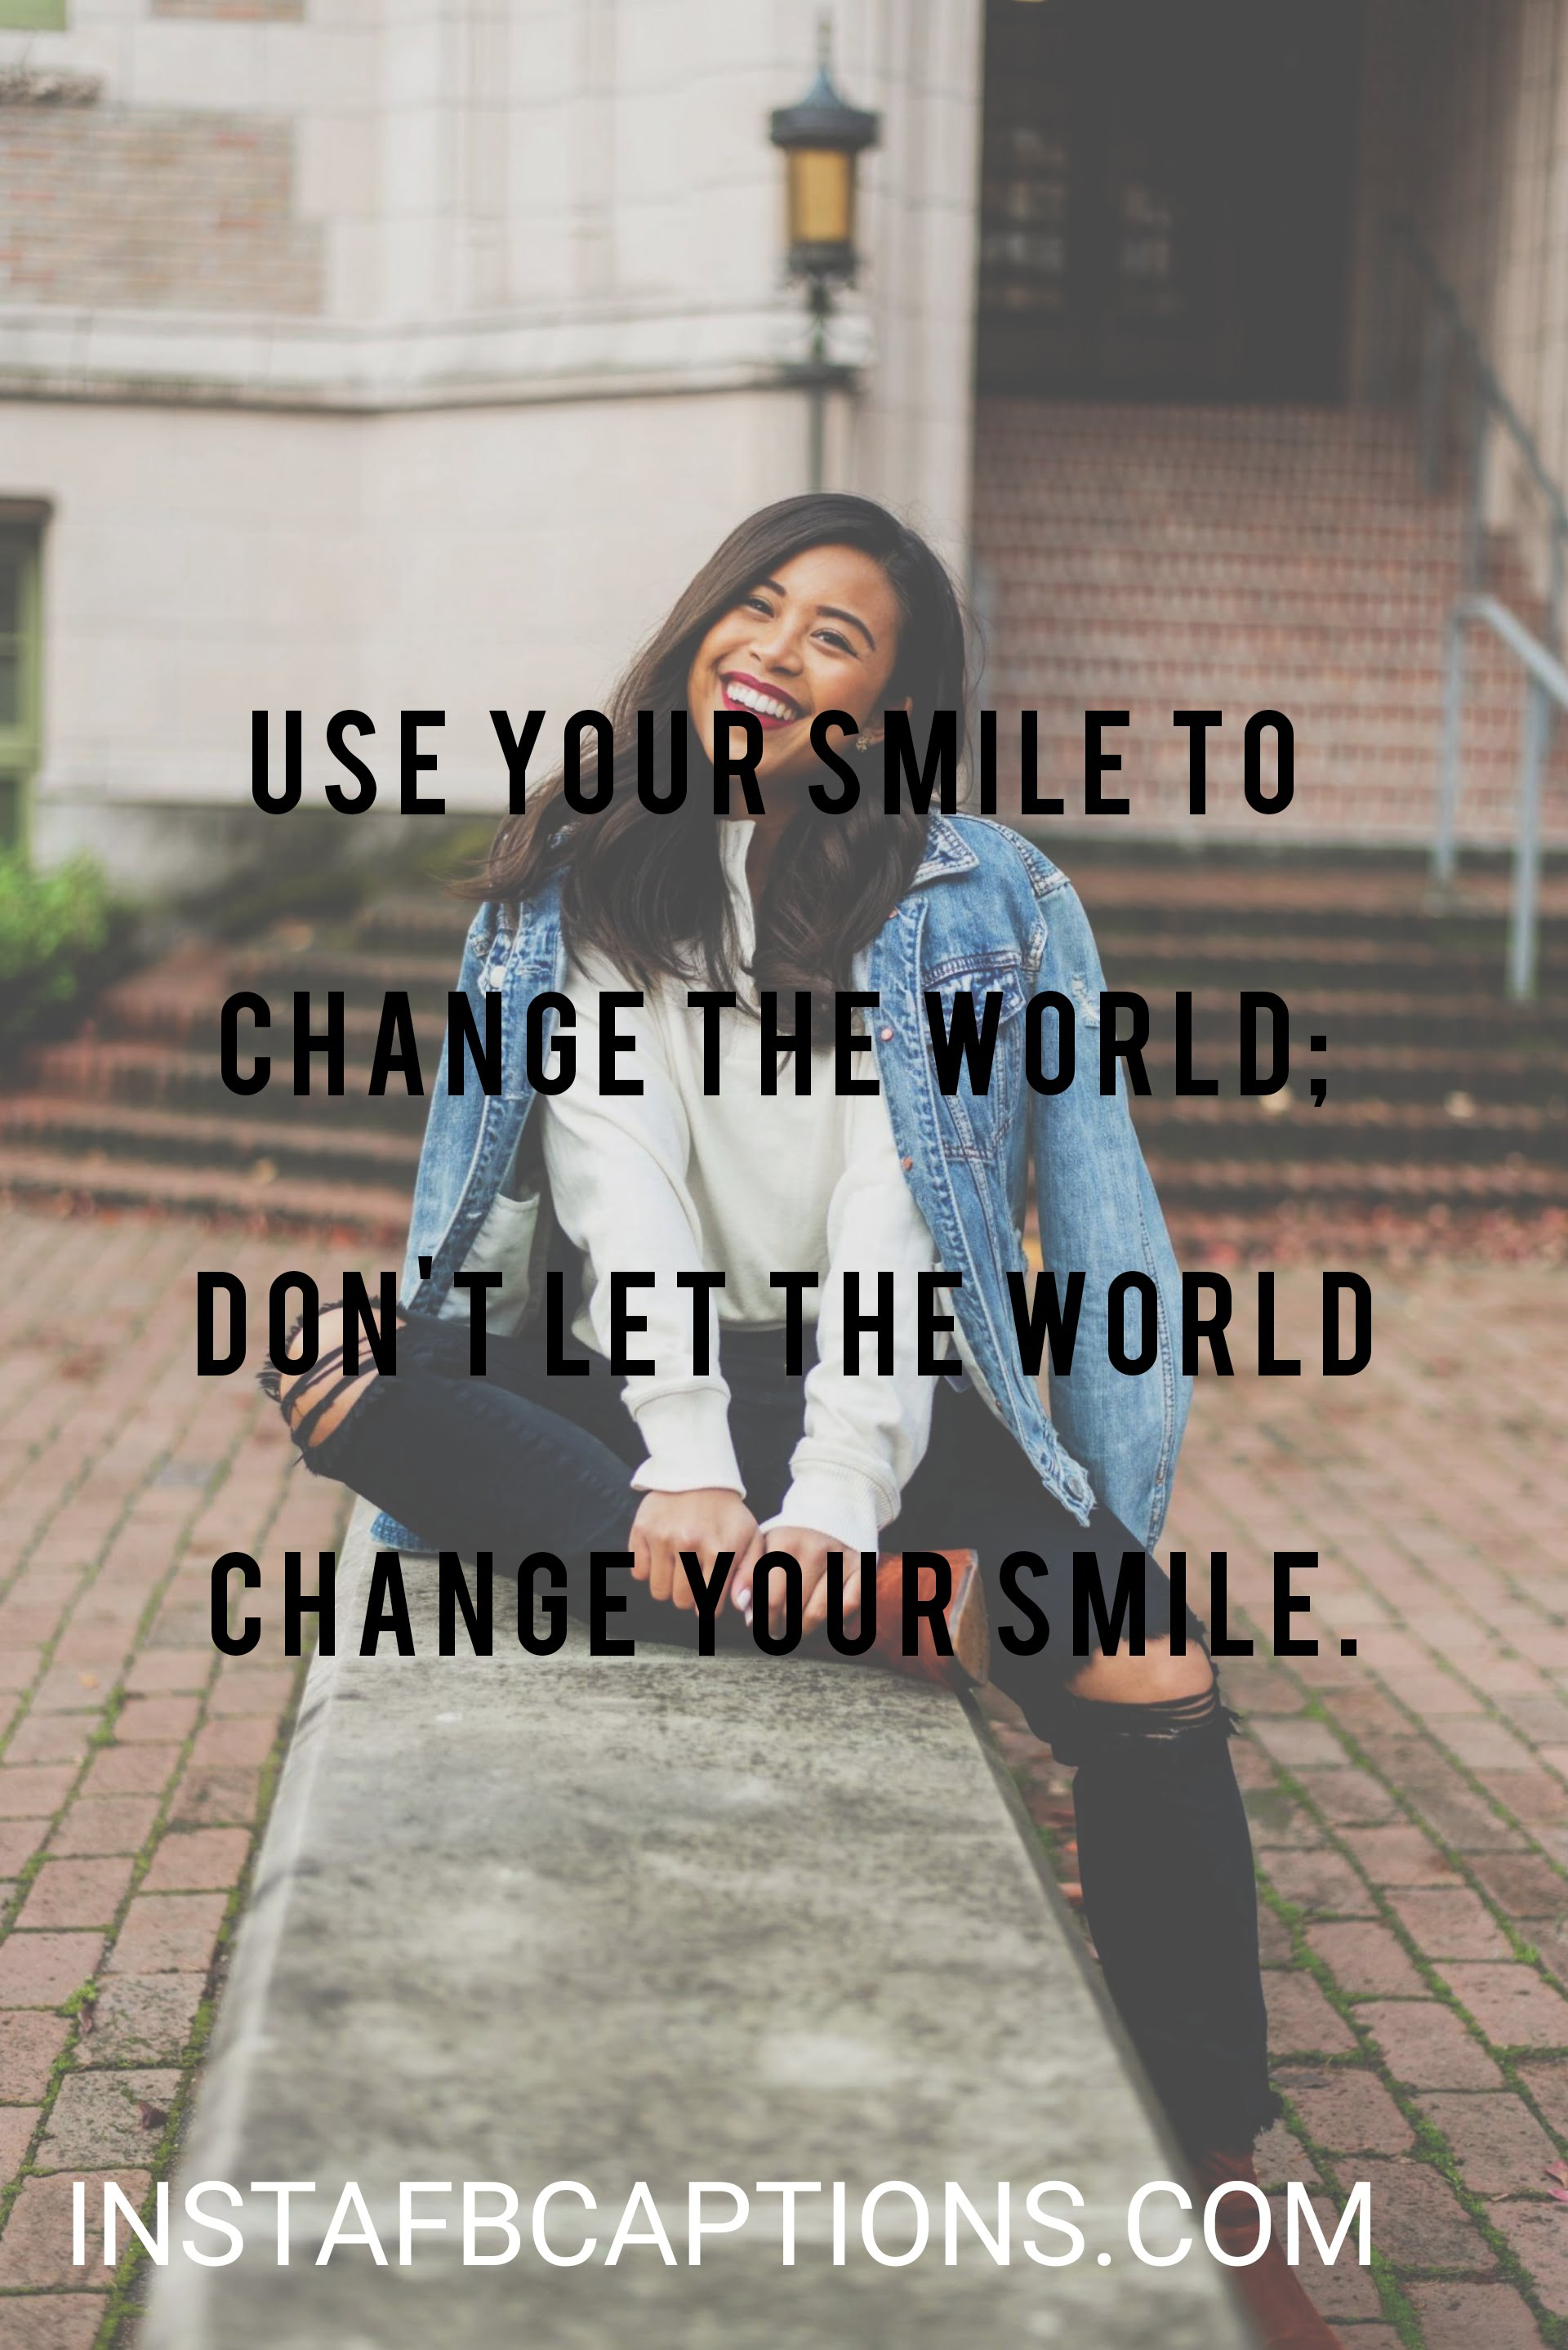 Short Sit And Smile Captions  - Short Sit and Smile Captions - 120+ SITTING POSE Instagram captions 2021